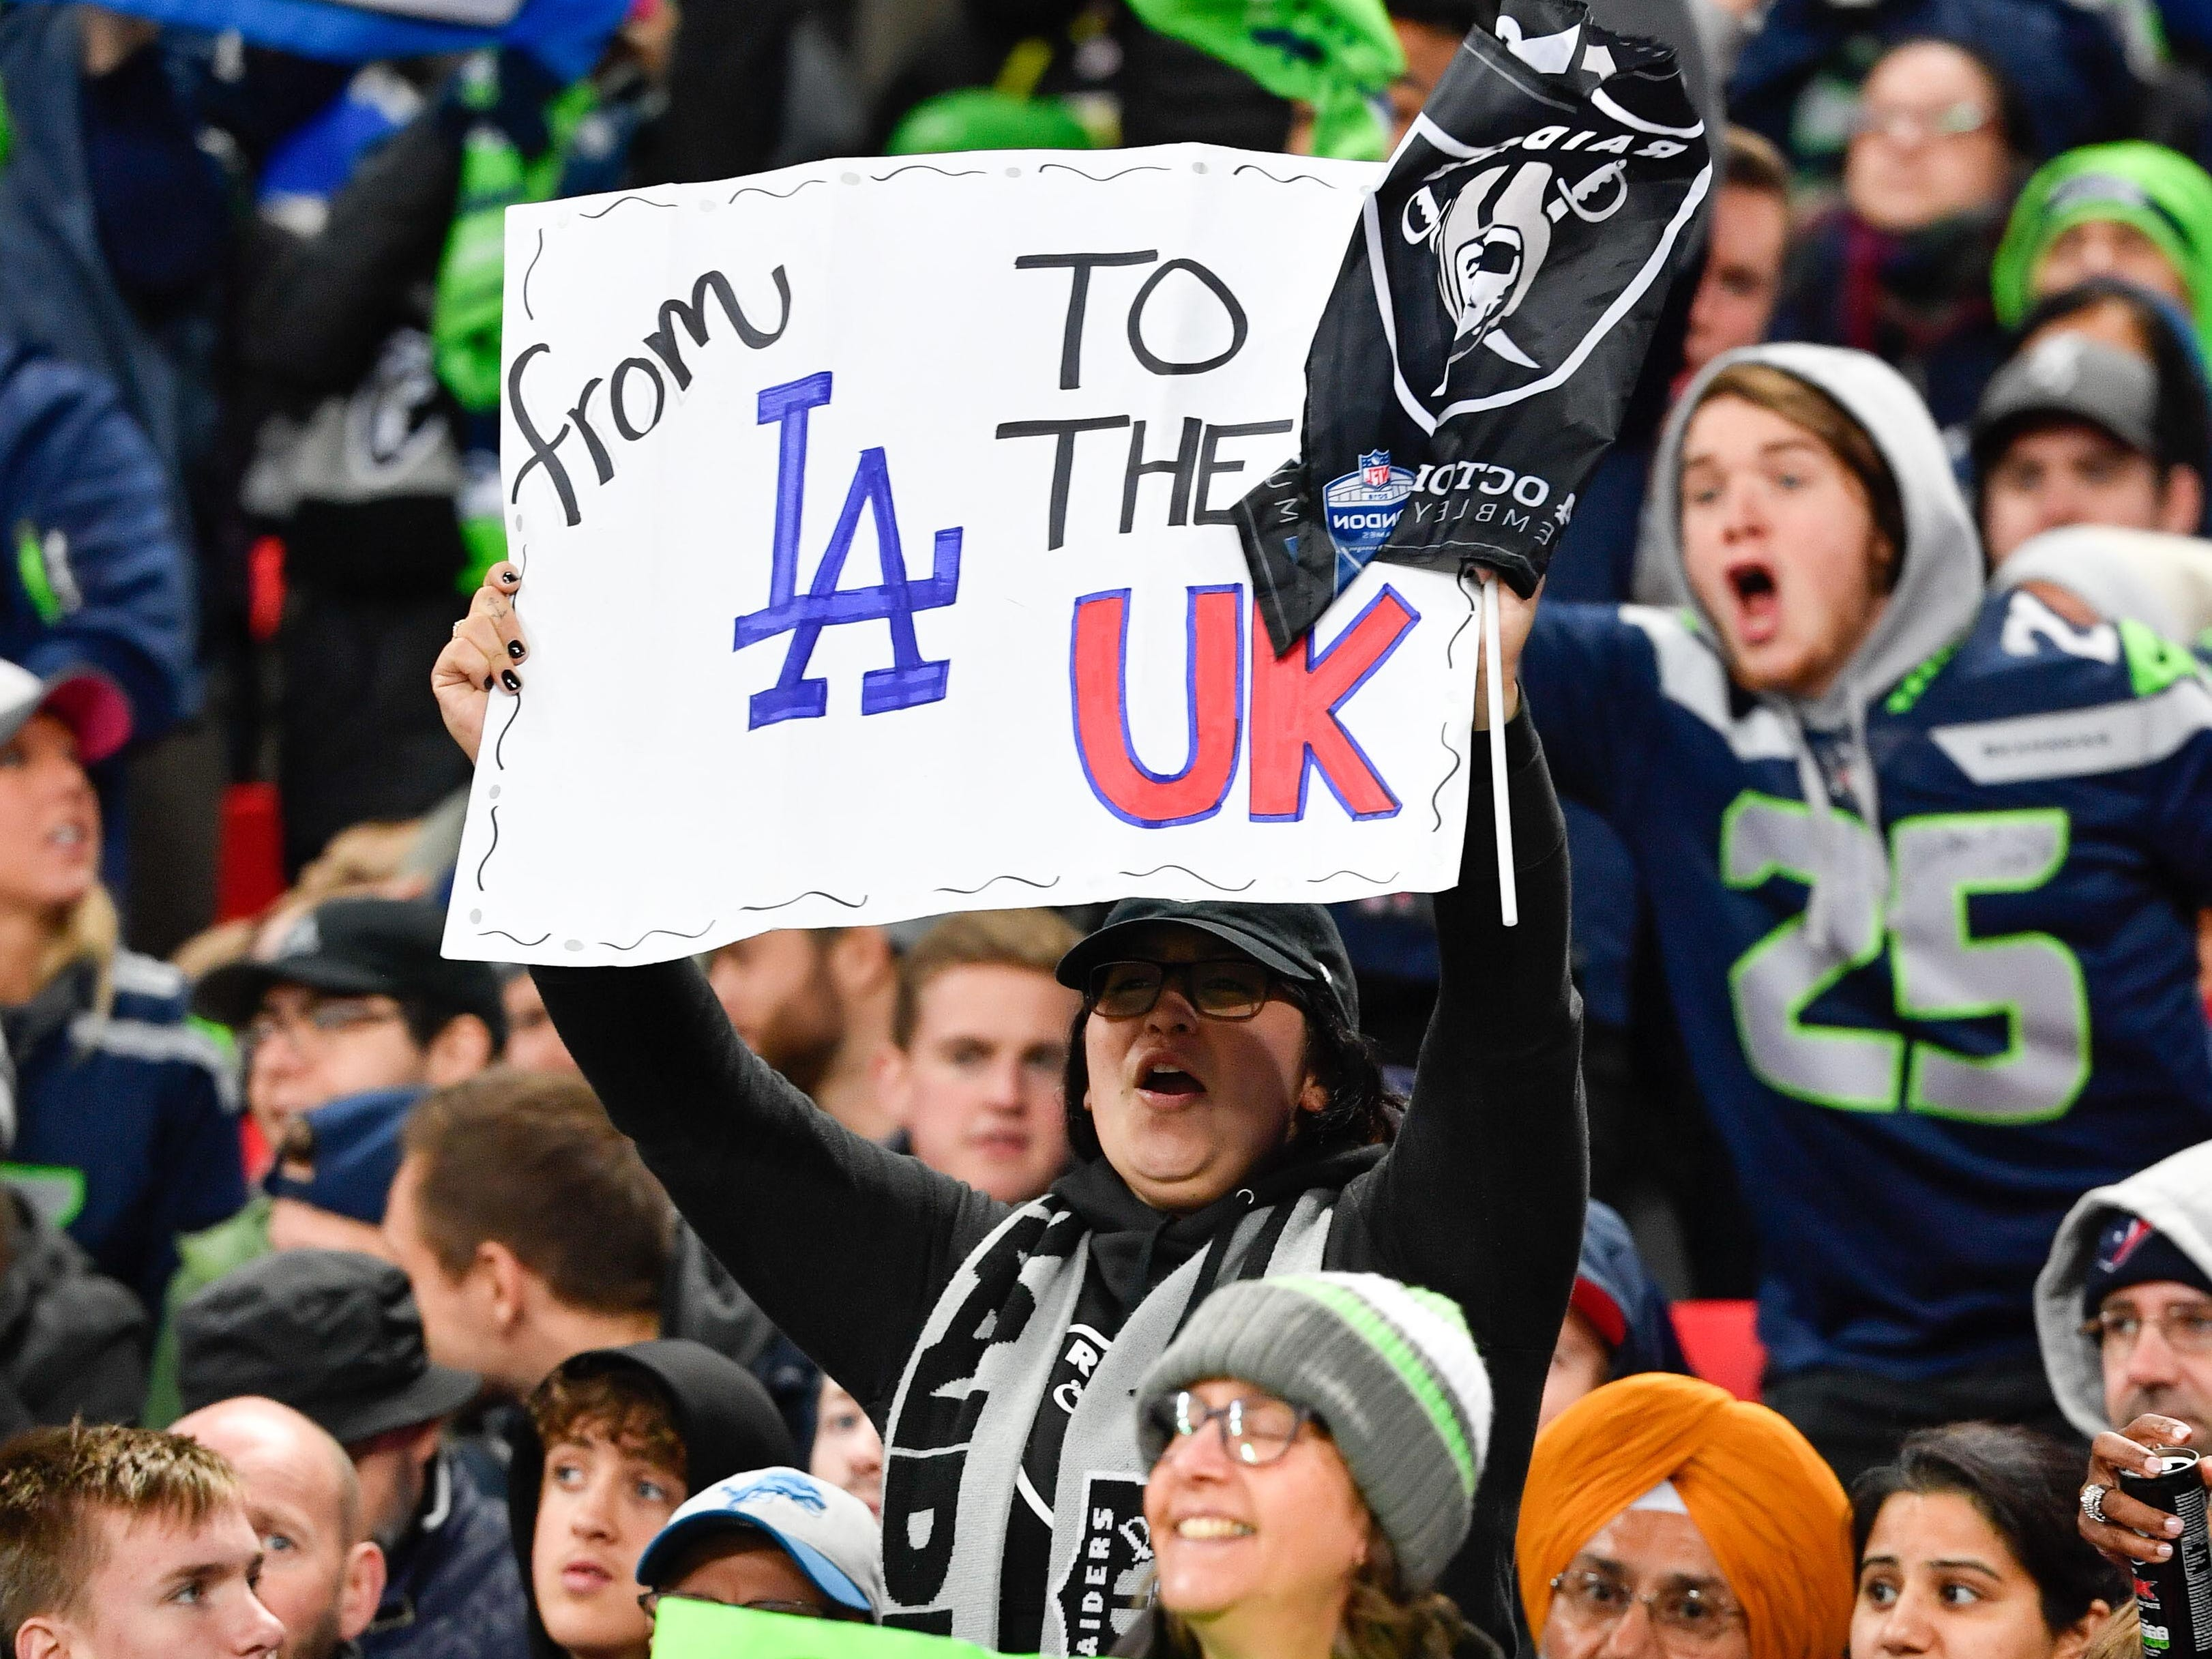 Fans cheer during the game between the Oakland Raiders and the Seattle Seahawks at Wembley Stadium in London.